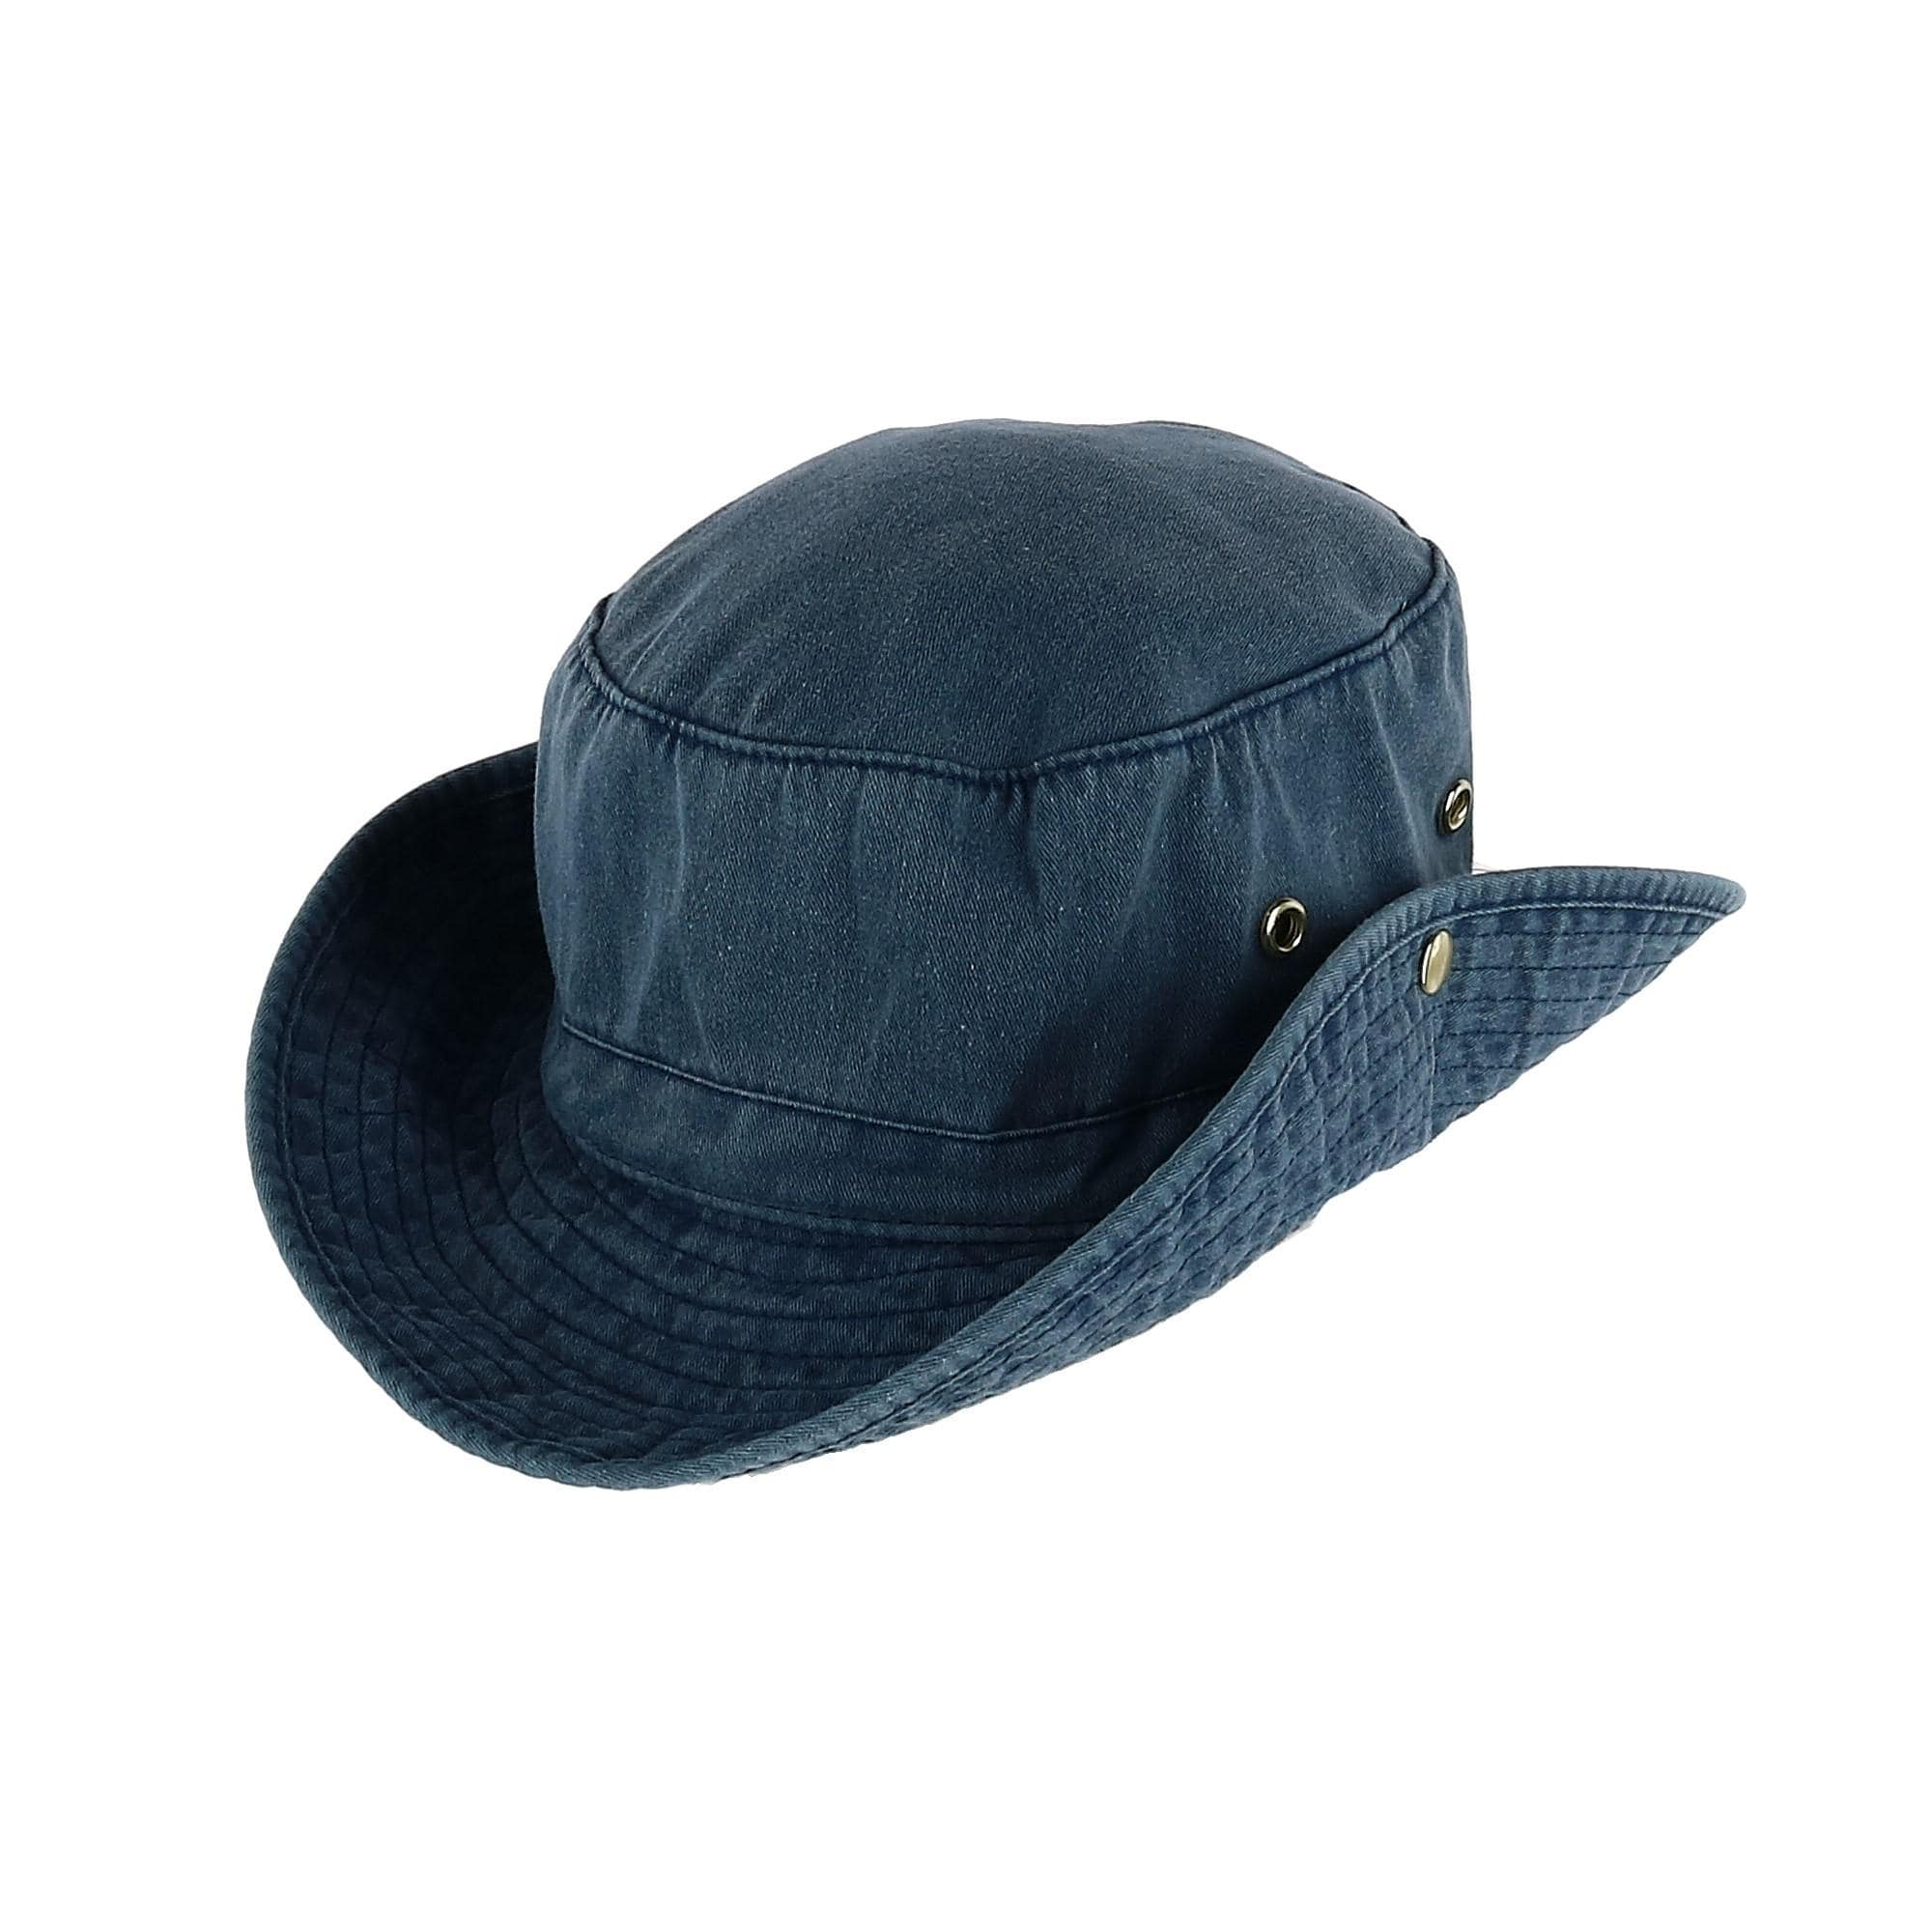 4c31ff24d99a1 Shop Broner Men s Garment Washed Bucket Hat with Snaps and Chin Cord - Free  Shipping On Orders Over  45 - Overstock - 28025189